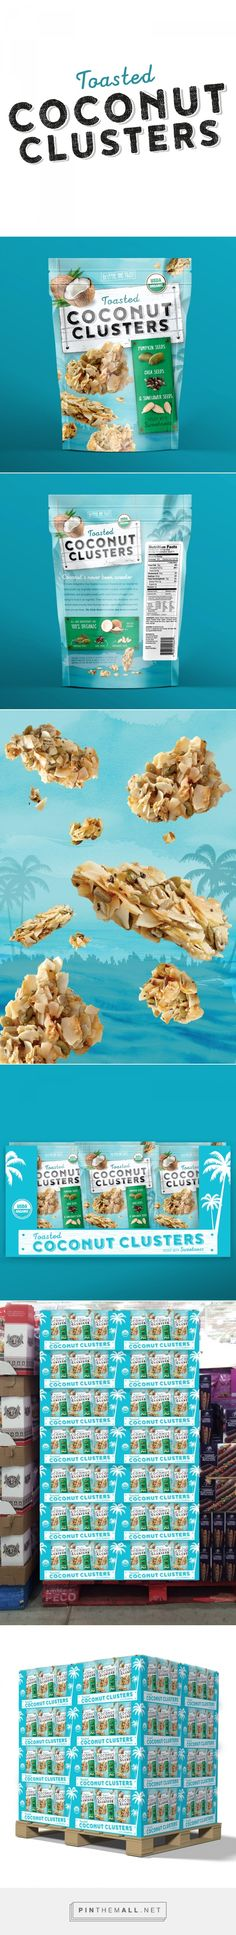 Toasted Coconut Clusters  - Packaging of the World - Creative Package Design…